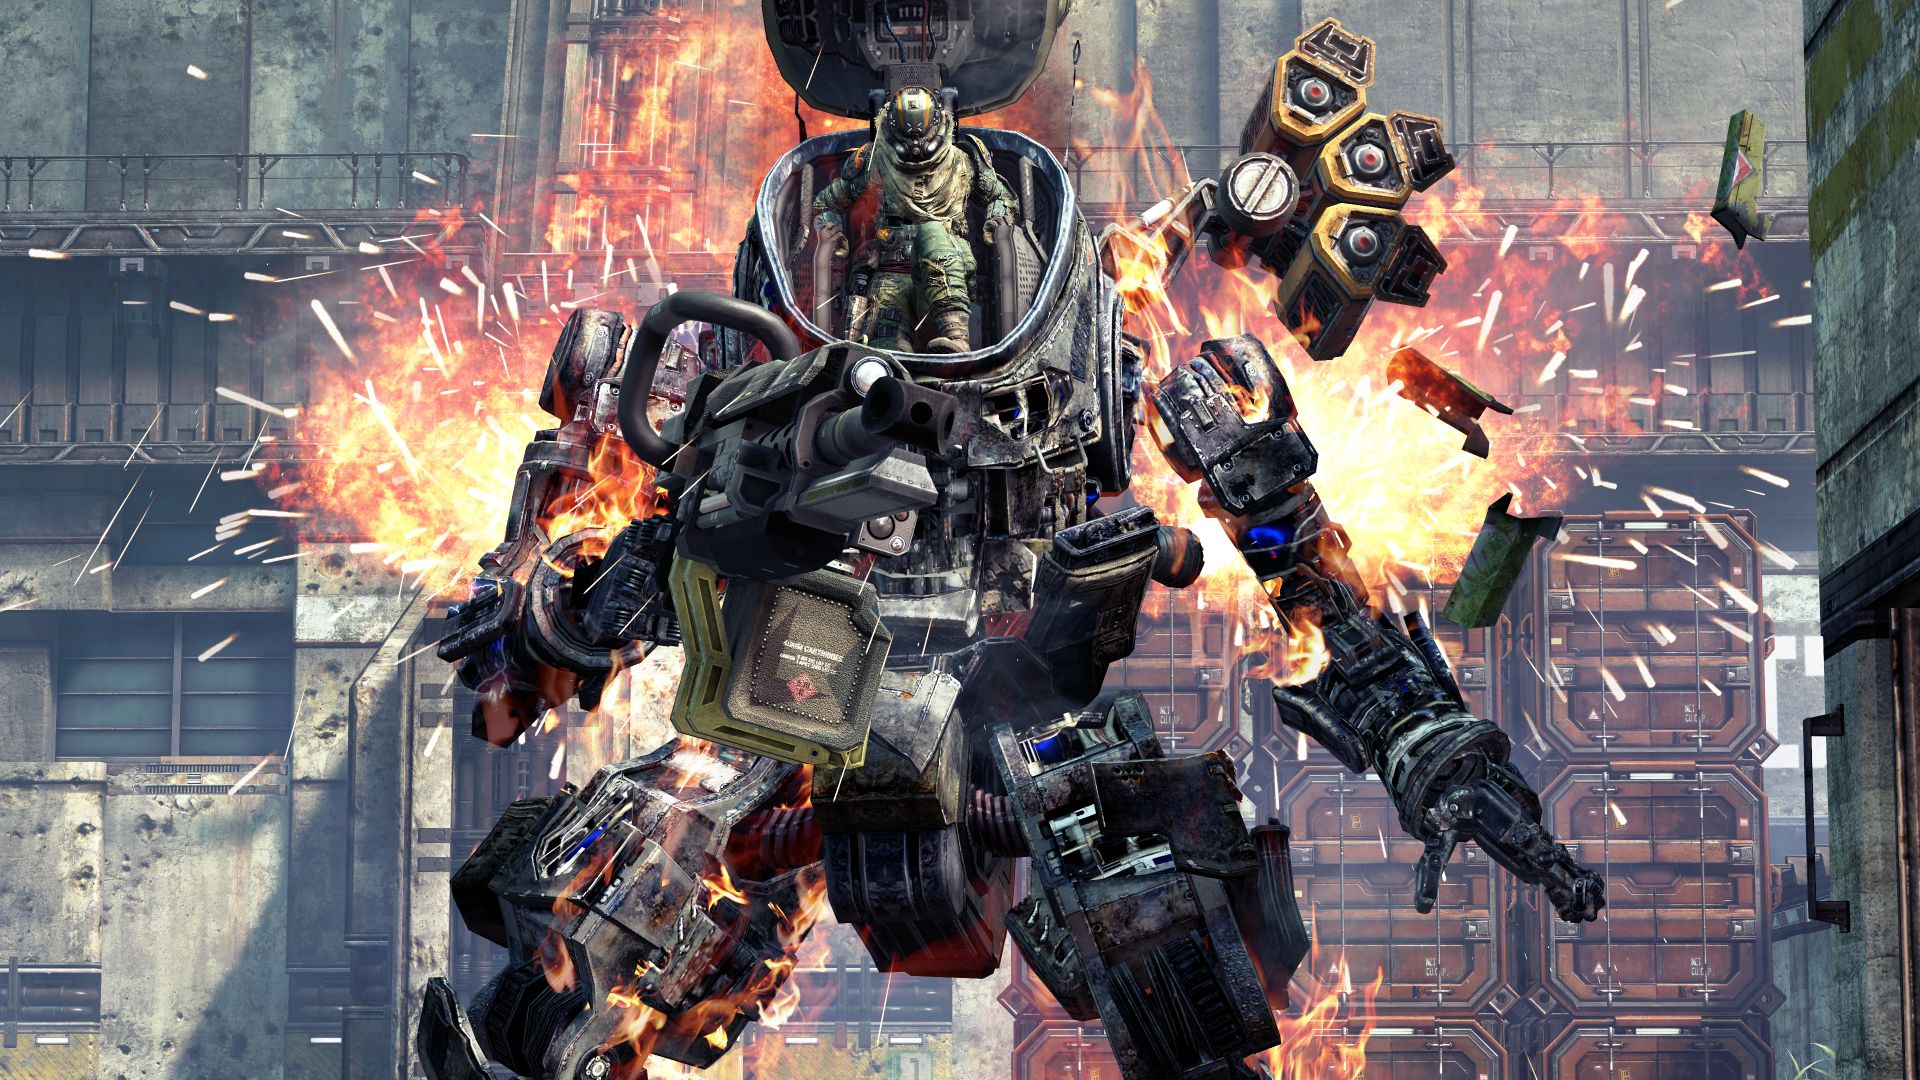 Should shooters like Battlefield follow Titanfall's lead and go multiplayer-only?